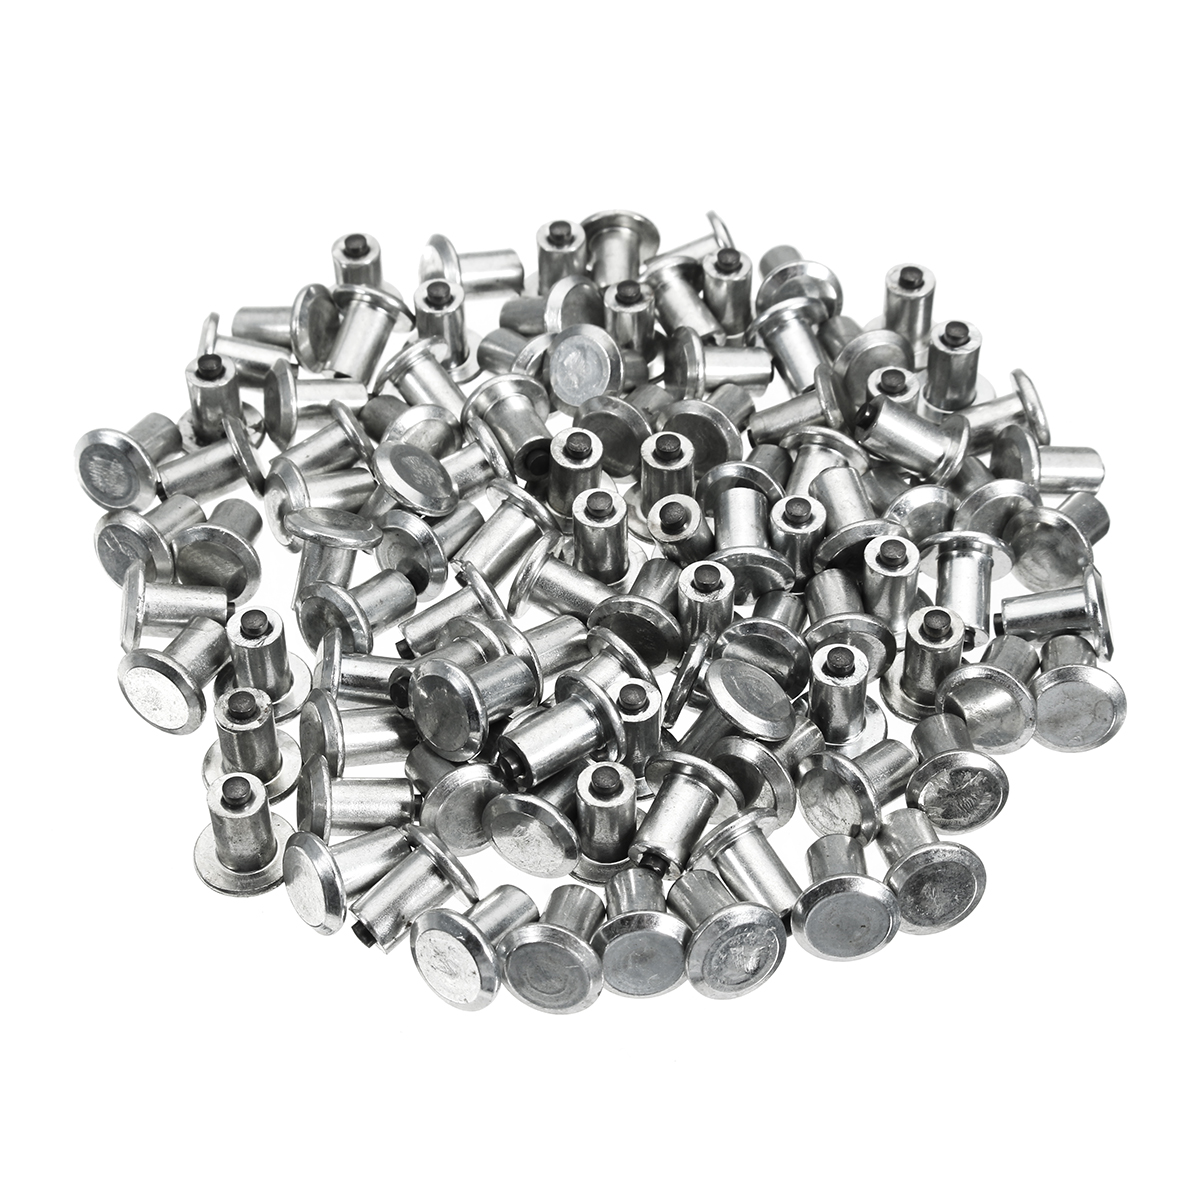 100PCS Car Tires Studs for Holes Tire Screw Snow Spikes Wheel Ty